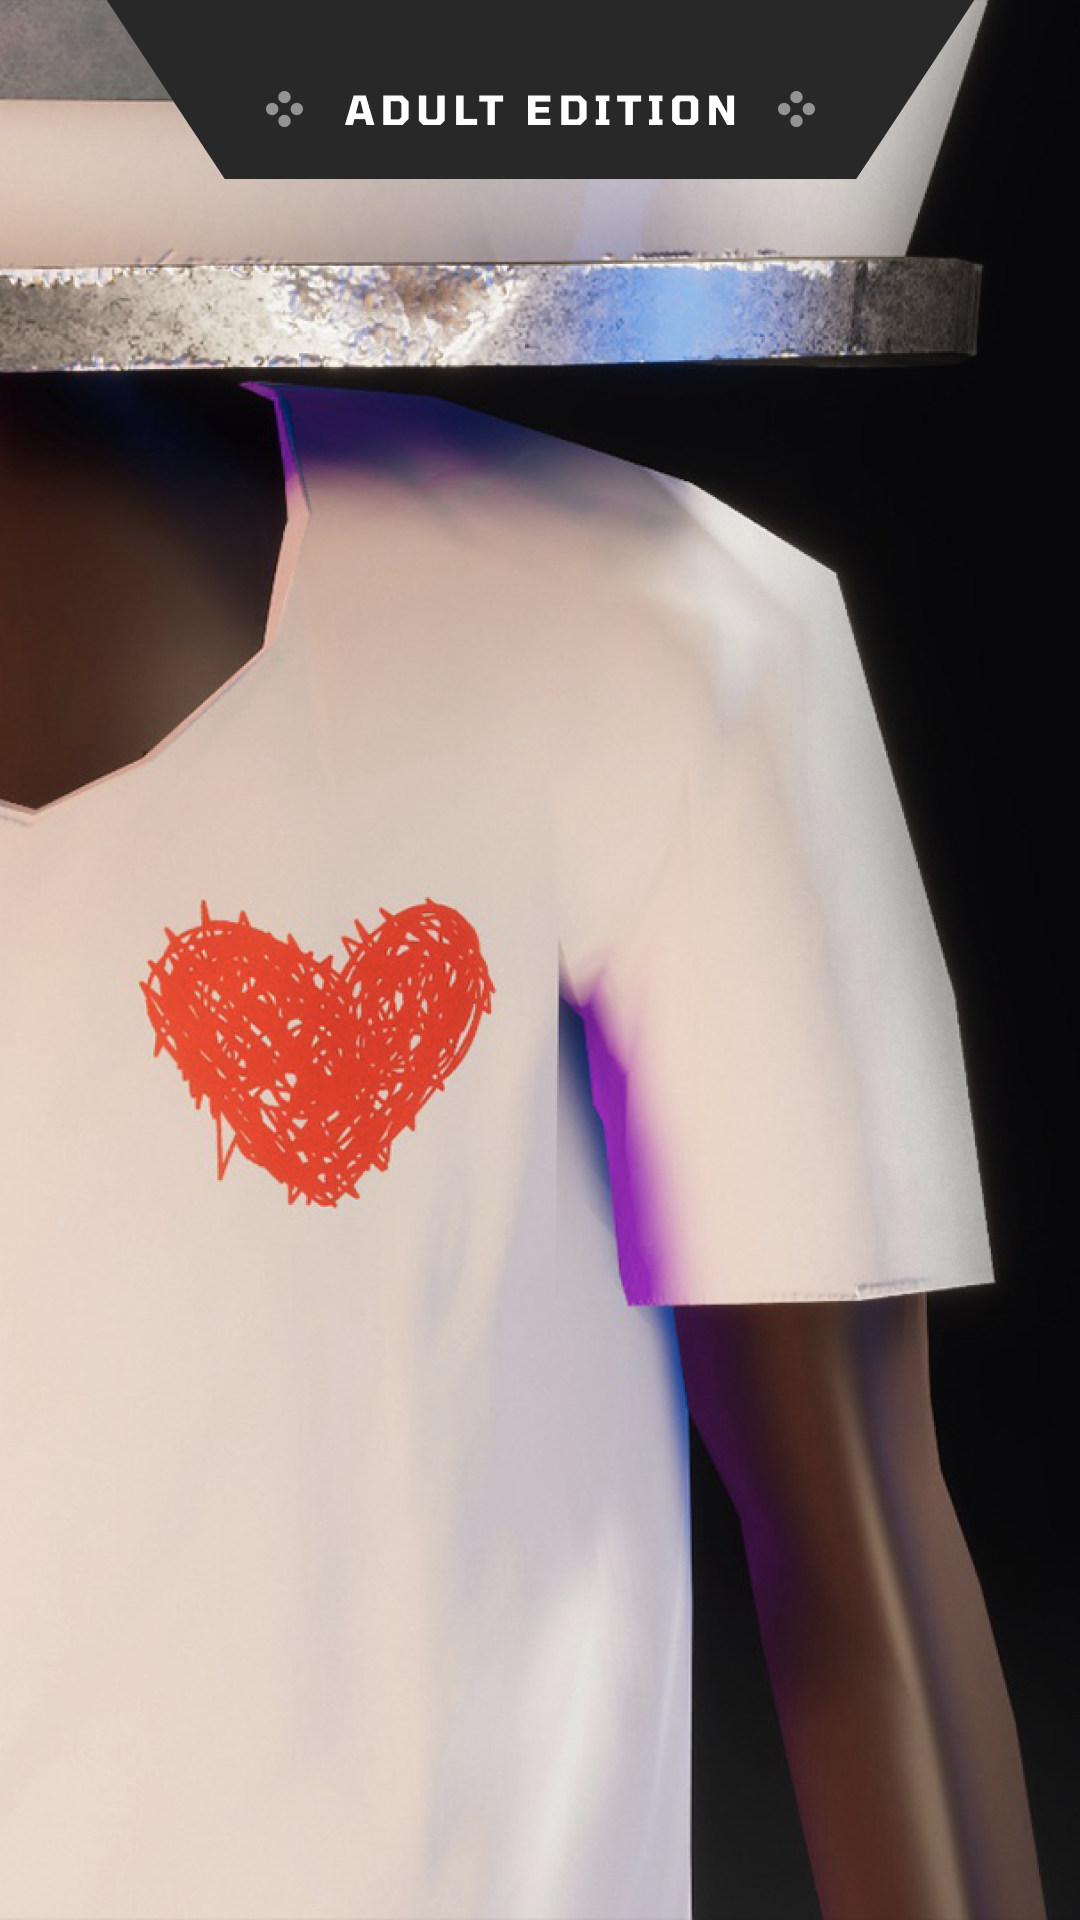 Heart Logo of the All Can Thrive Adult Shirt